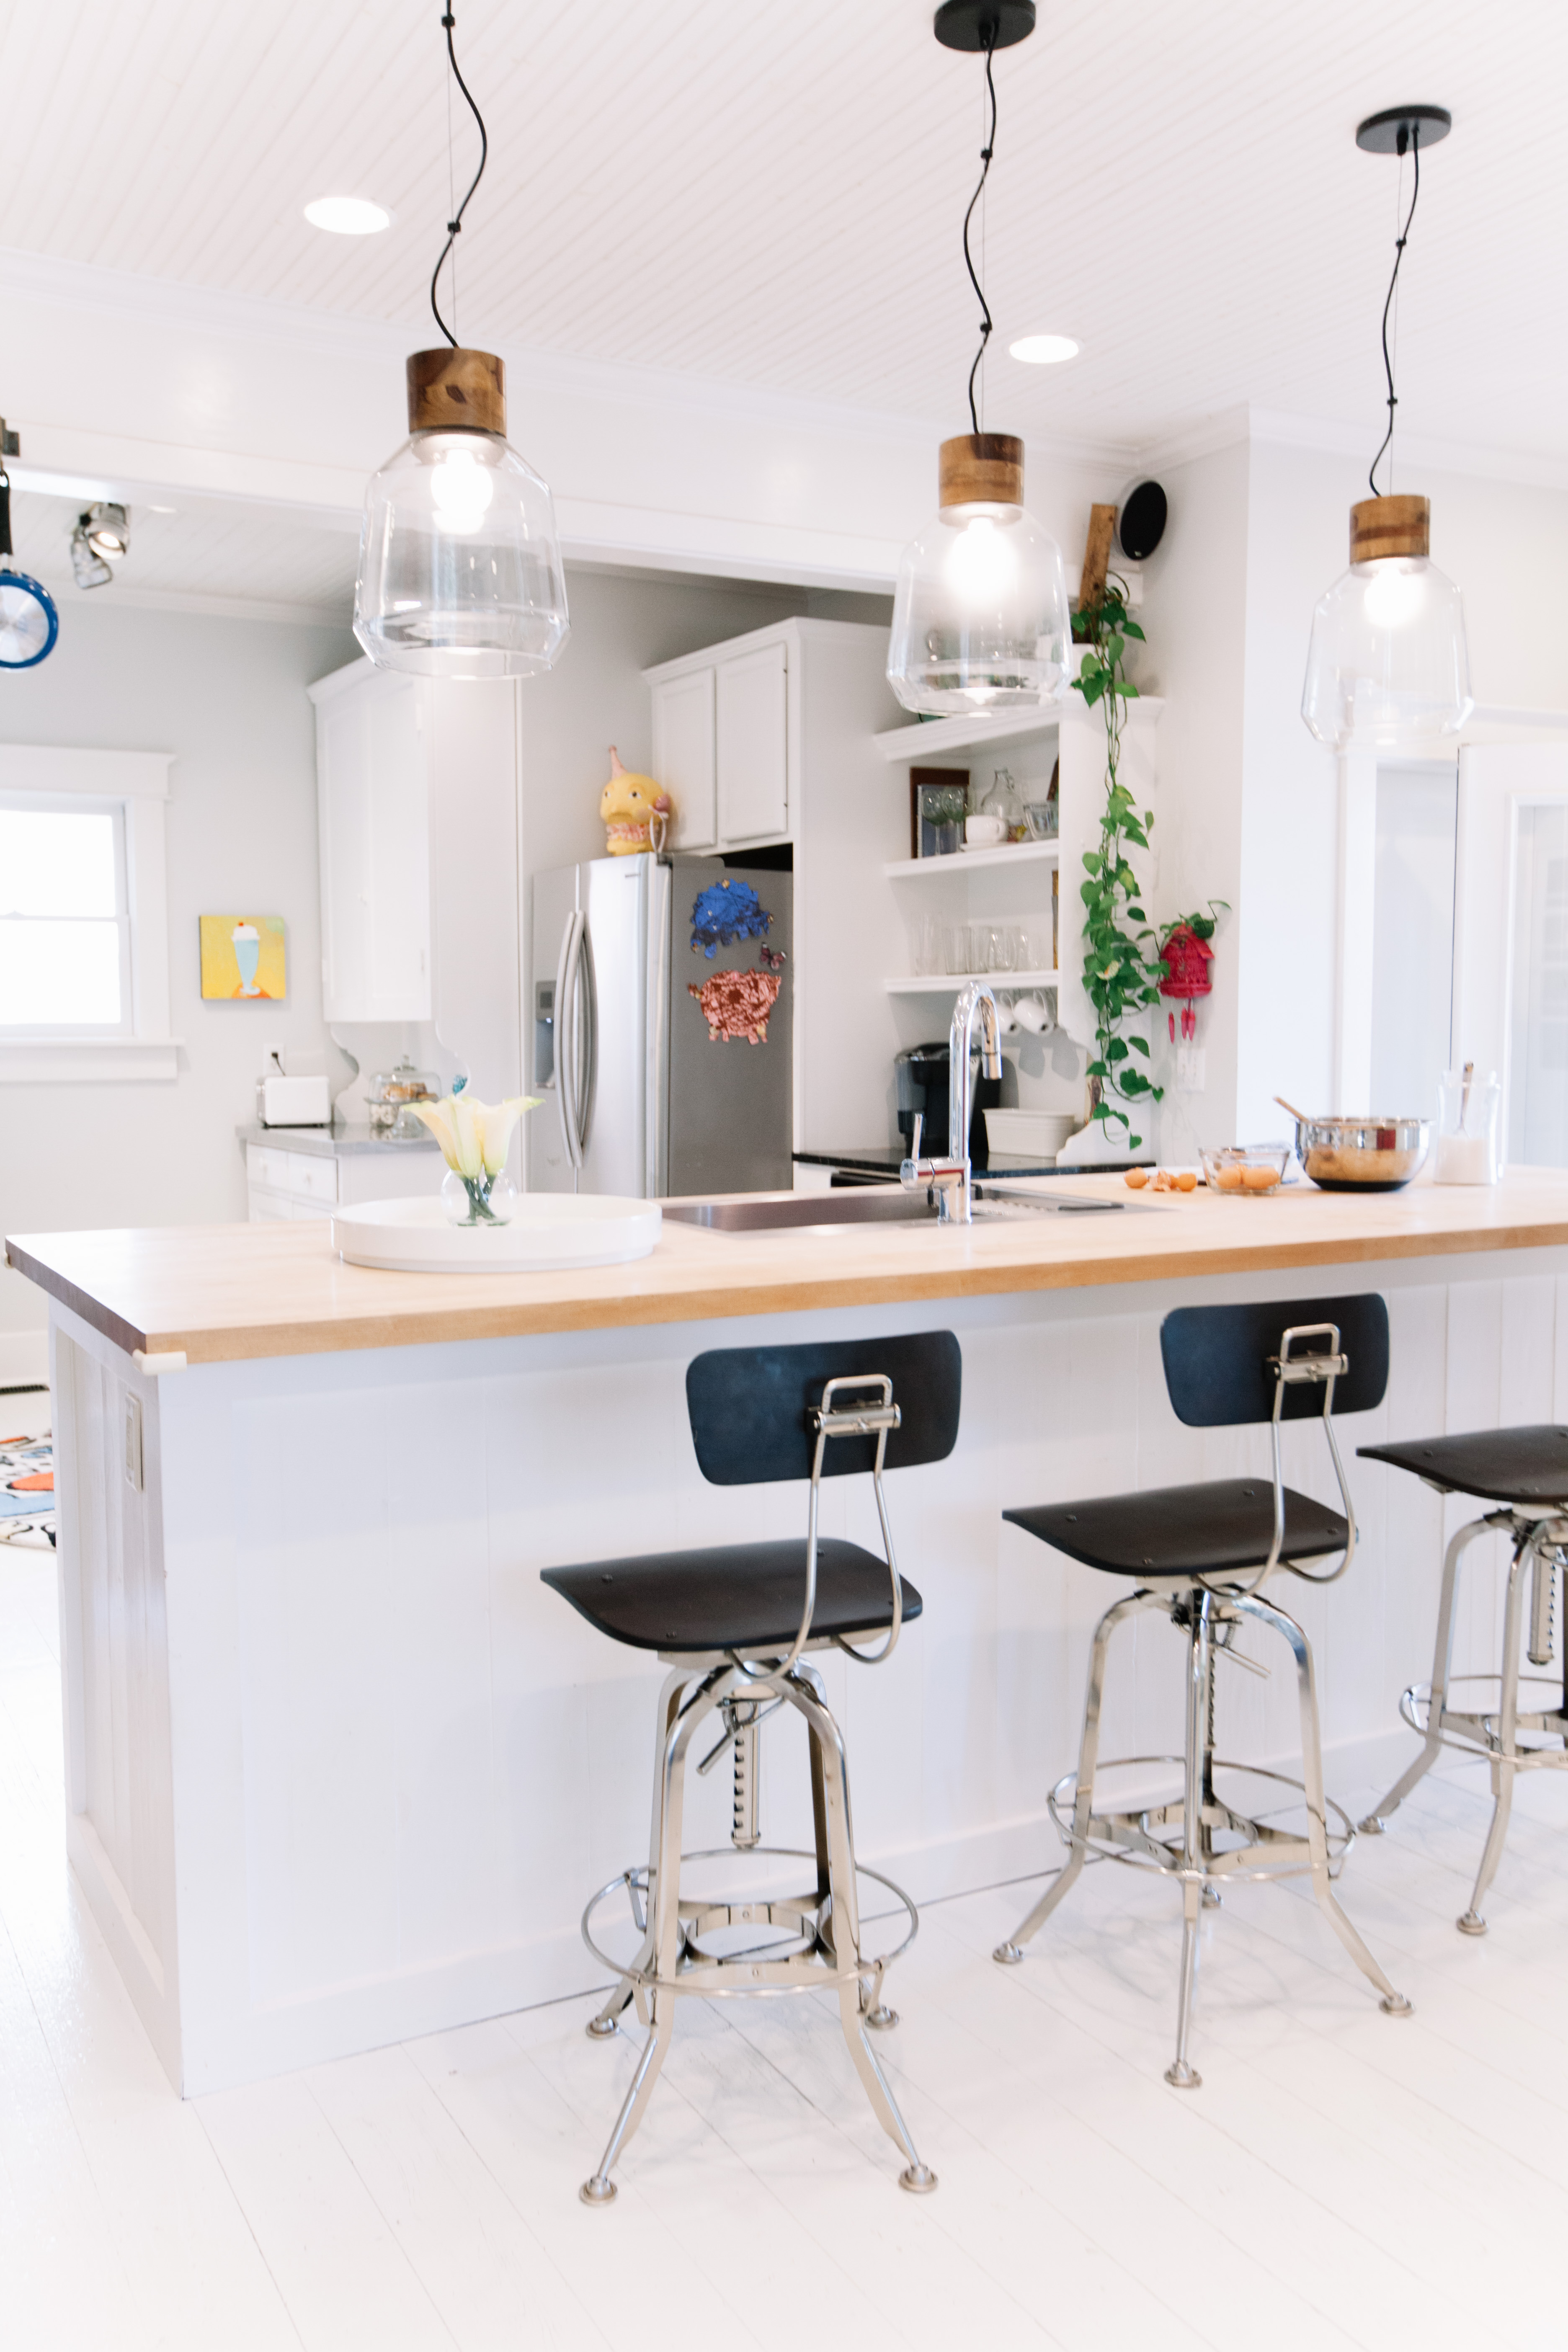 9 Kitchen Island Breakfast Bar Ideas for Countertop Seating With ...